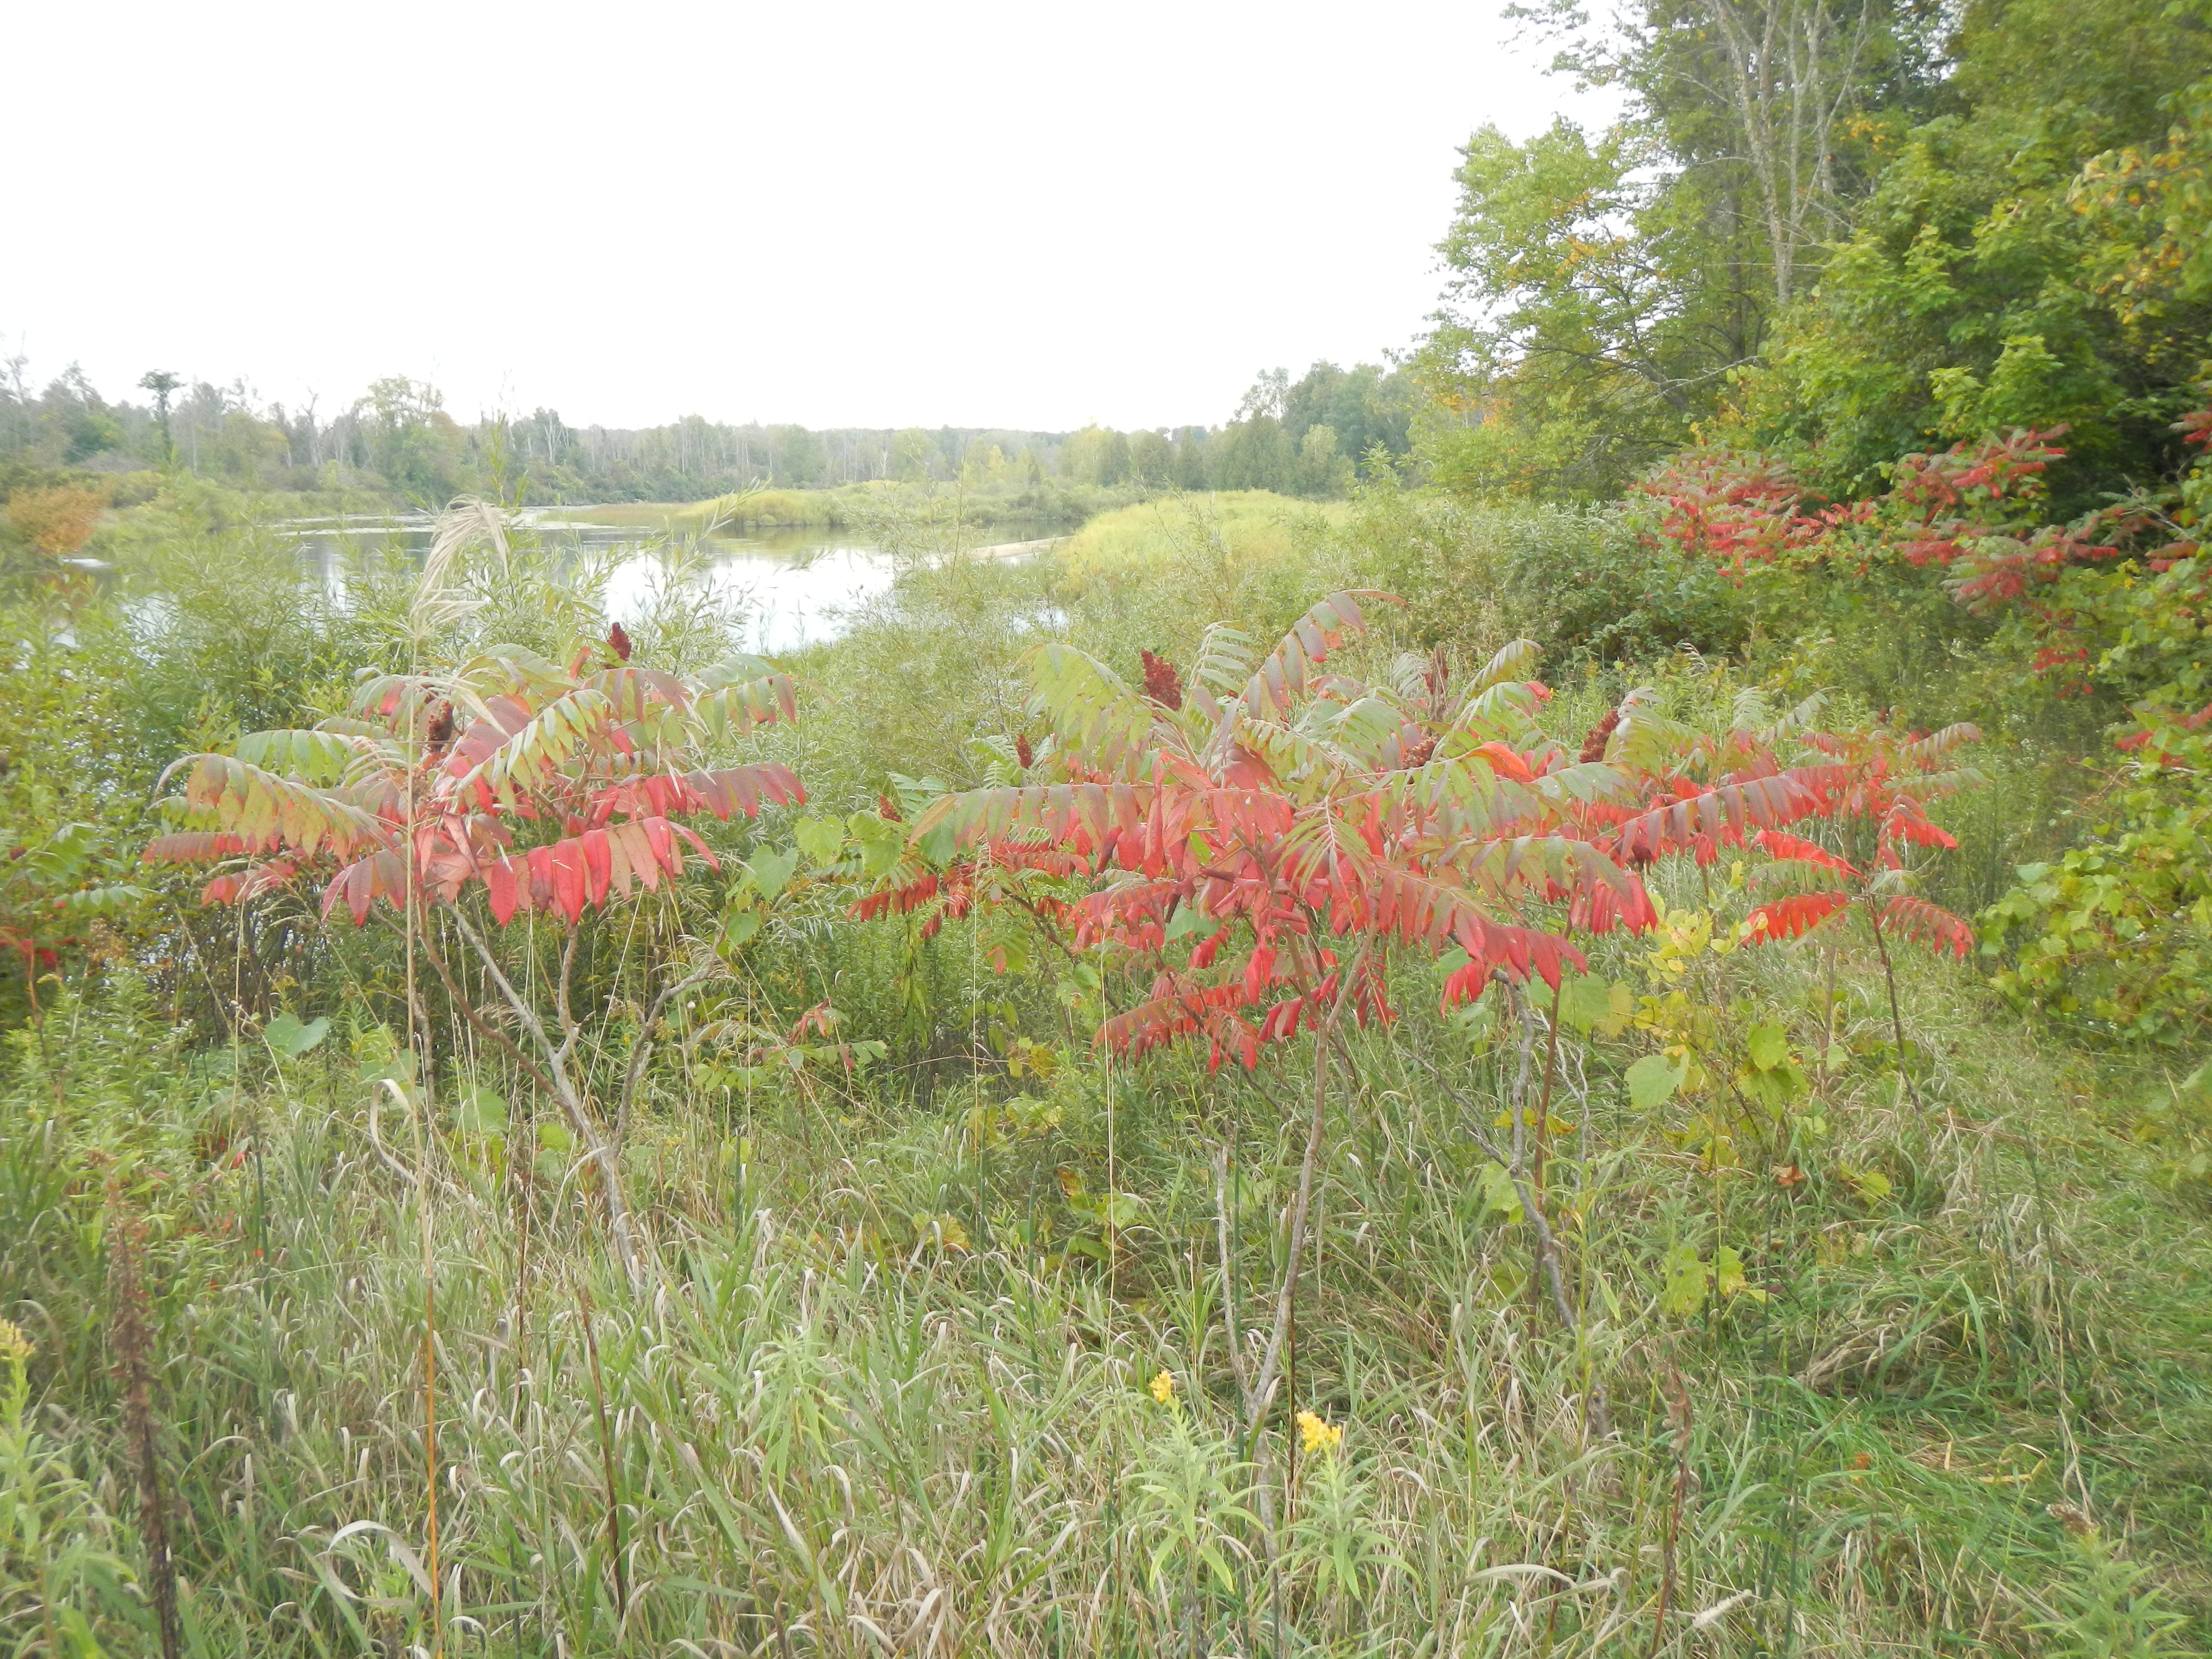 Fall colors are just starting, the sumac is always among the first